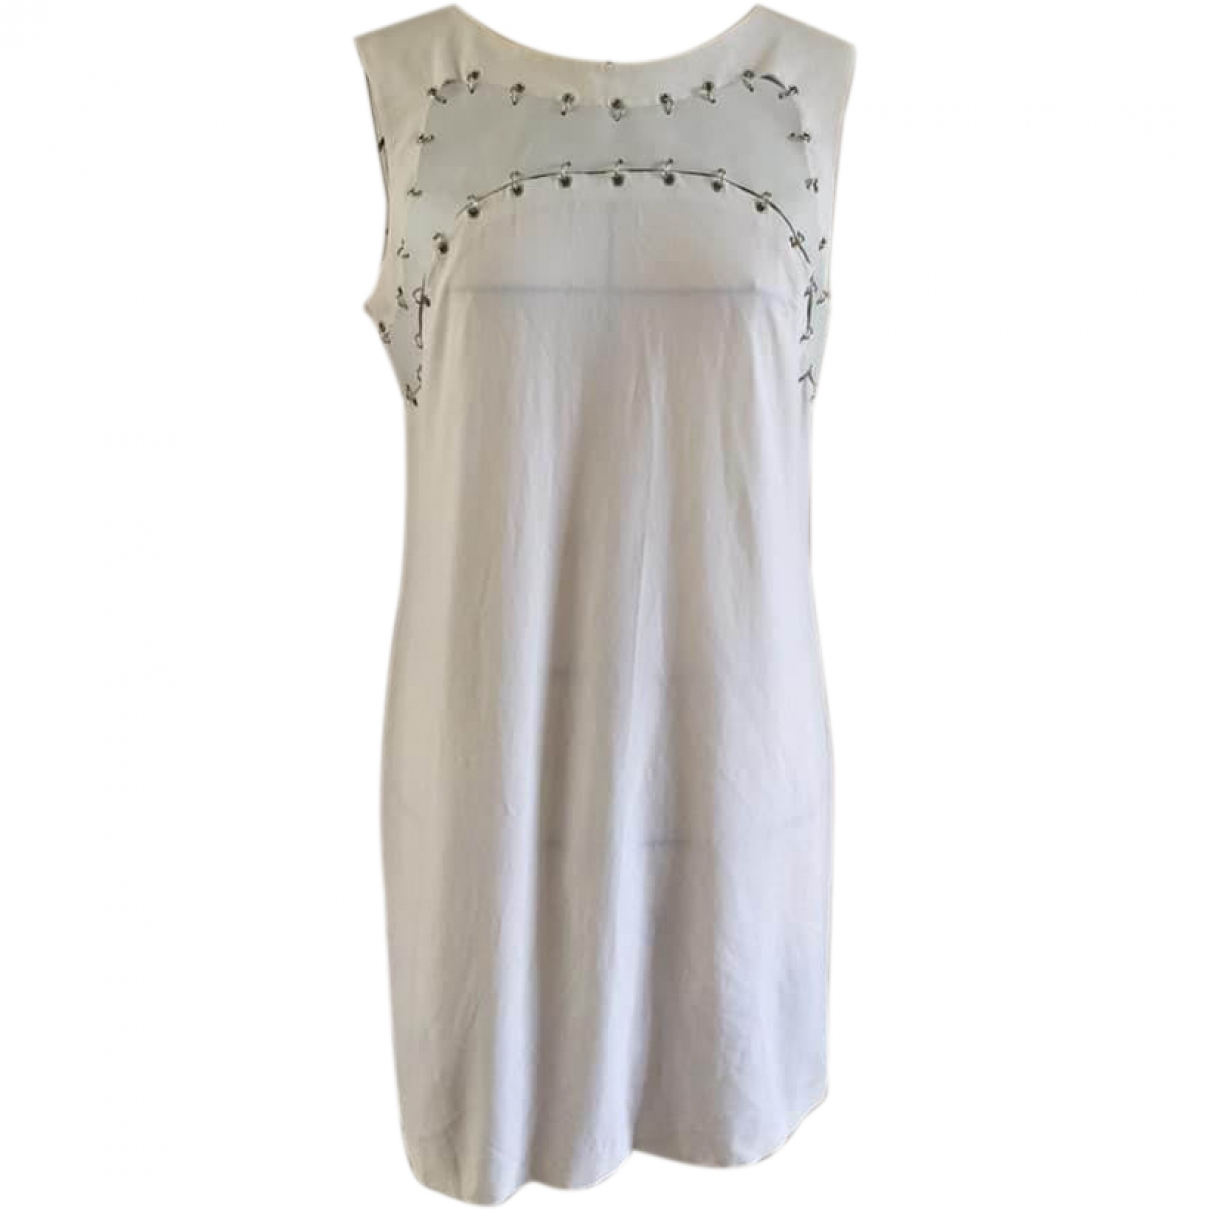 Paco Rabanne \N White Cotton dress for Women 40 FR